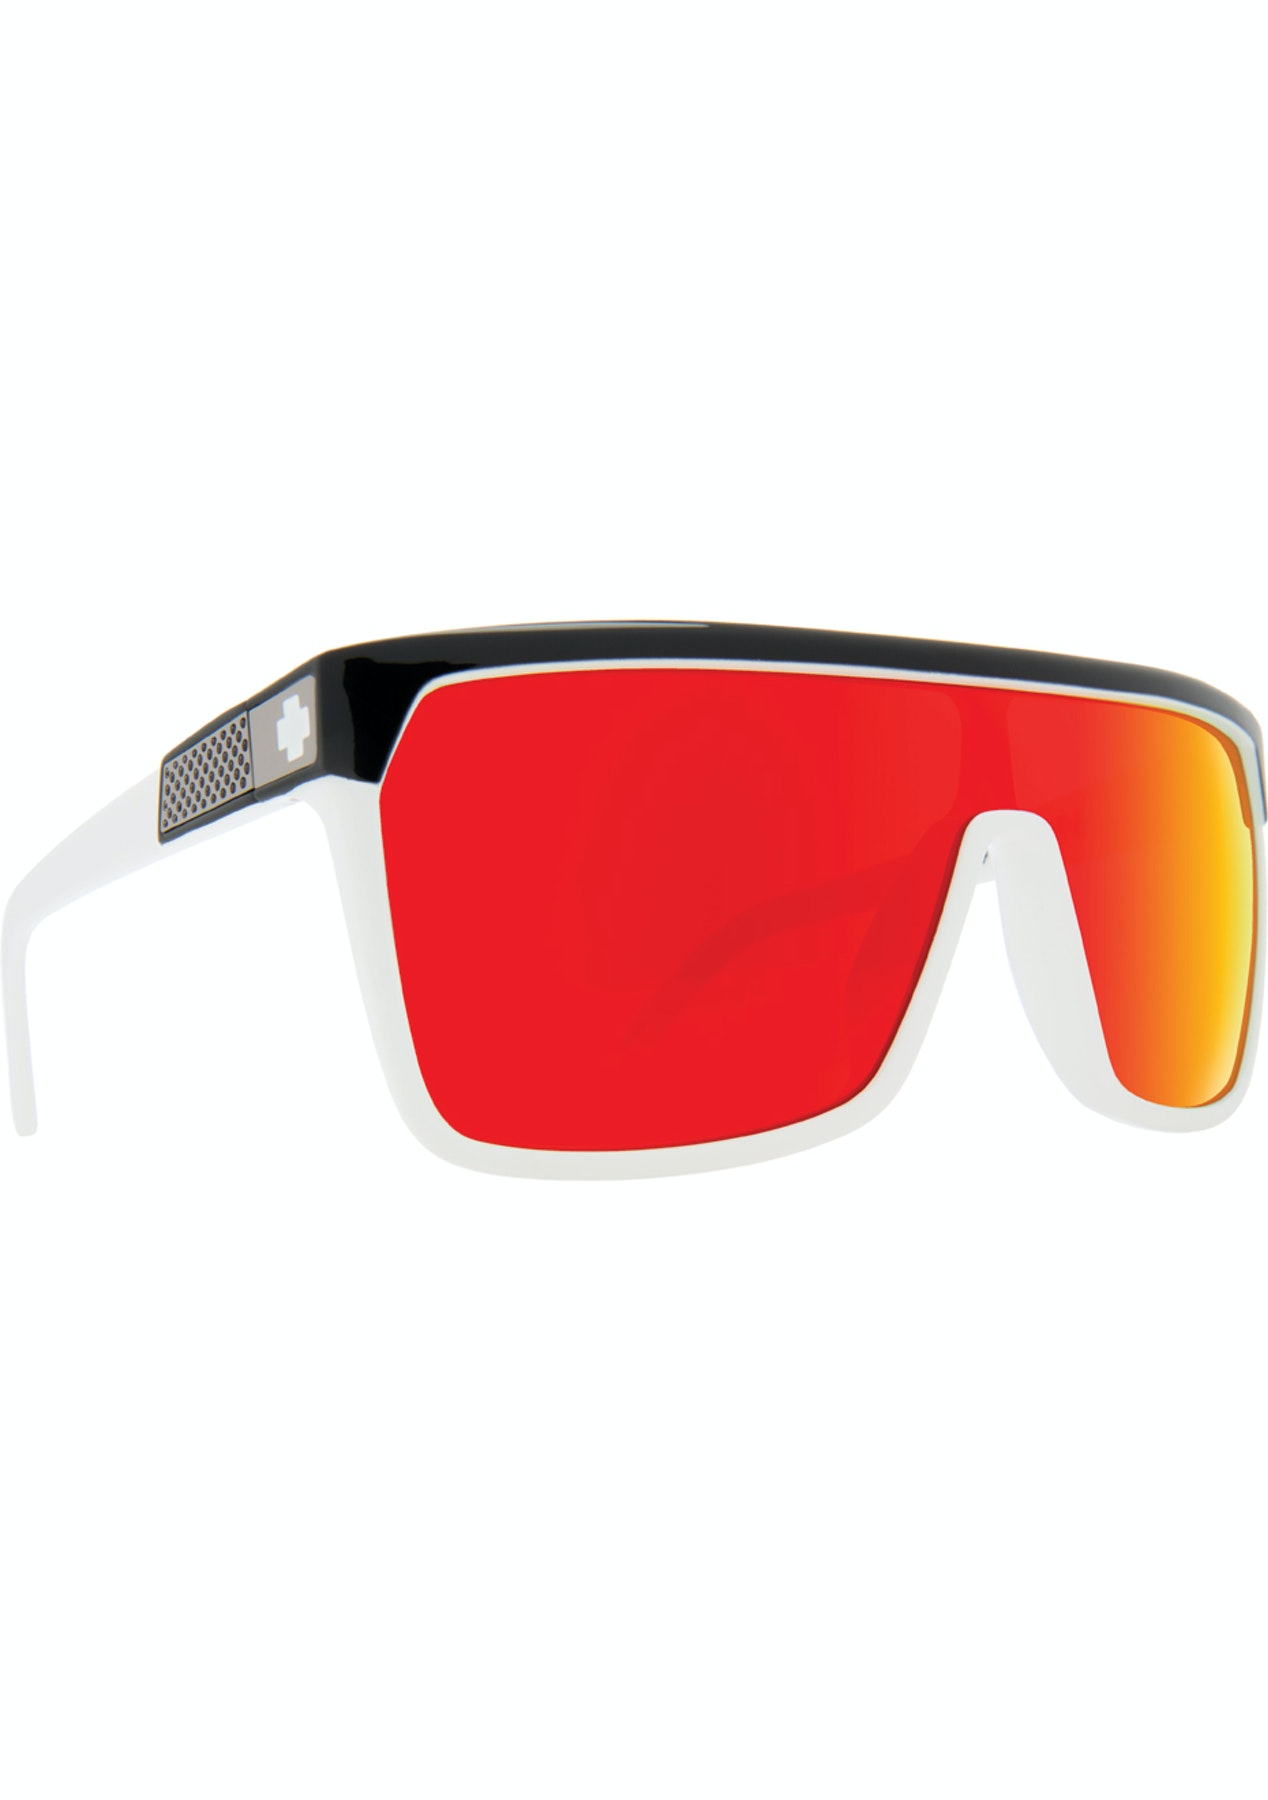 4c5212519350 SPY Flynn Sunglasses - Boxing Day Mens Clearance - Onceit